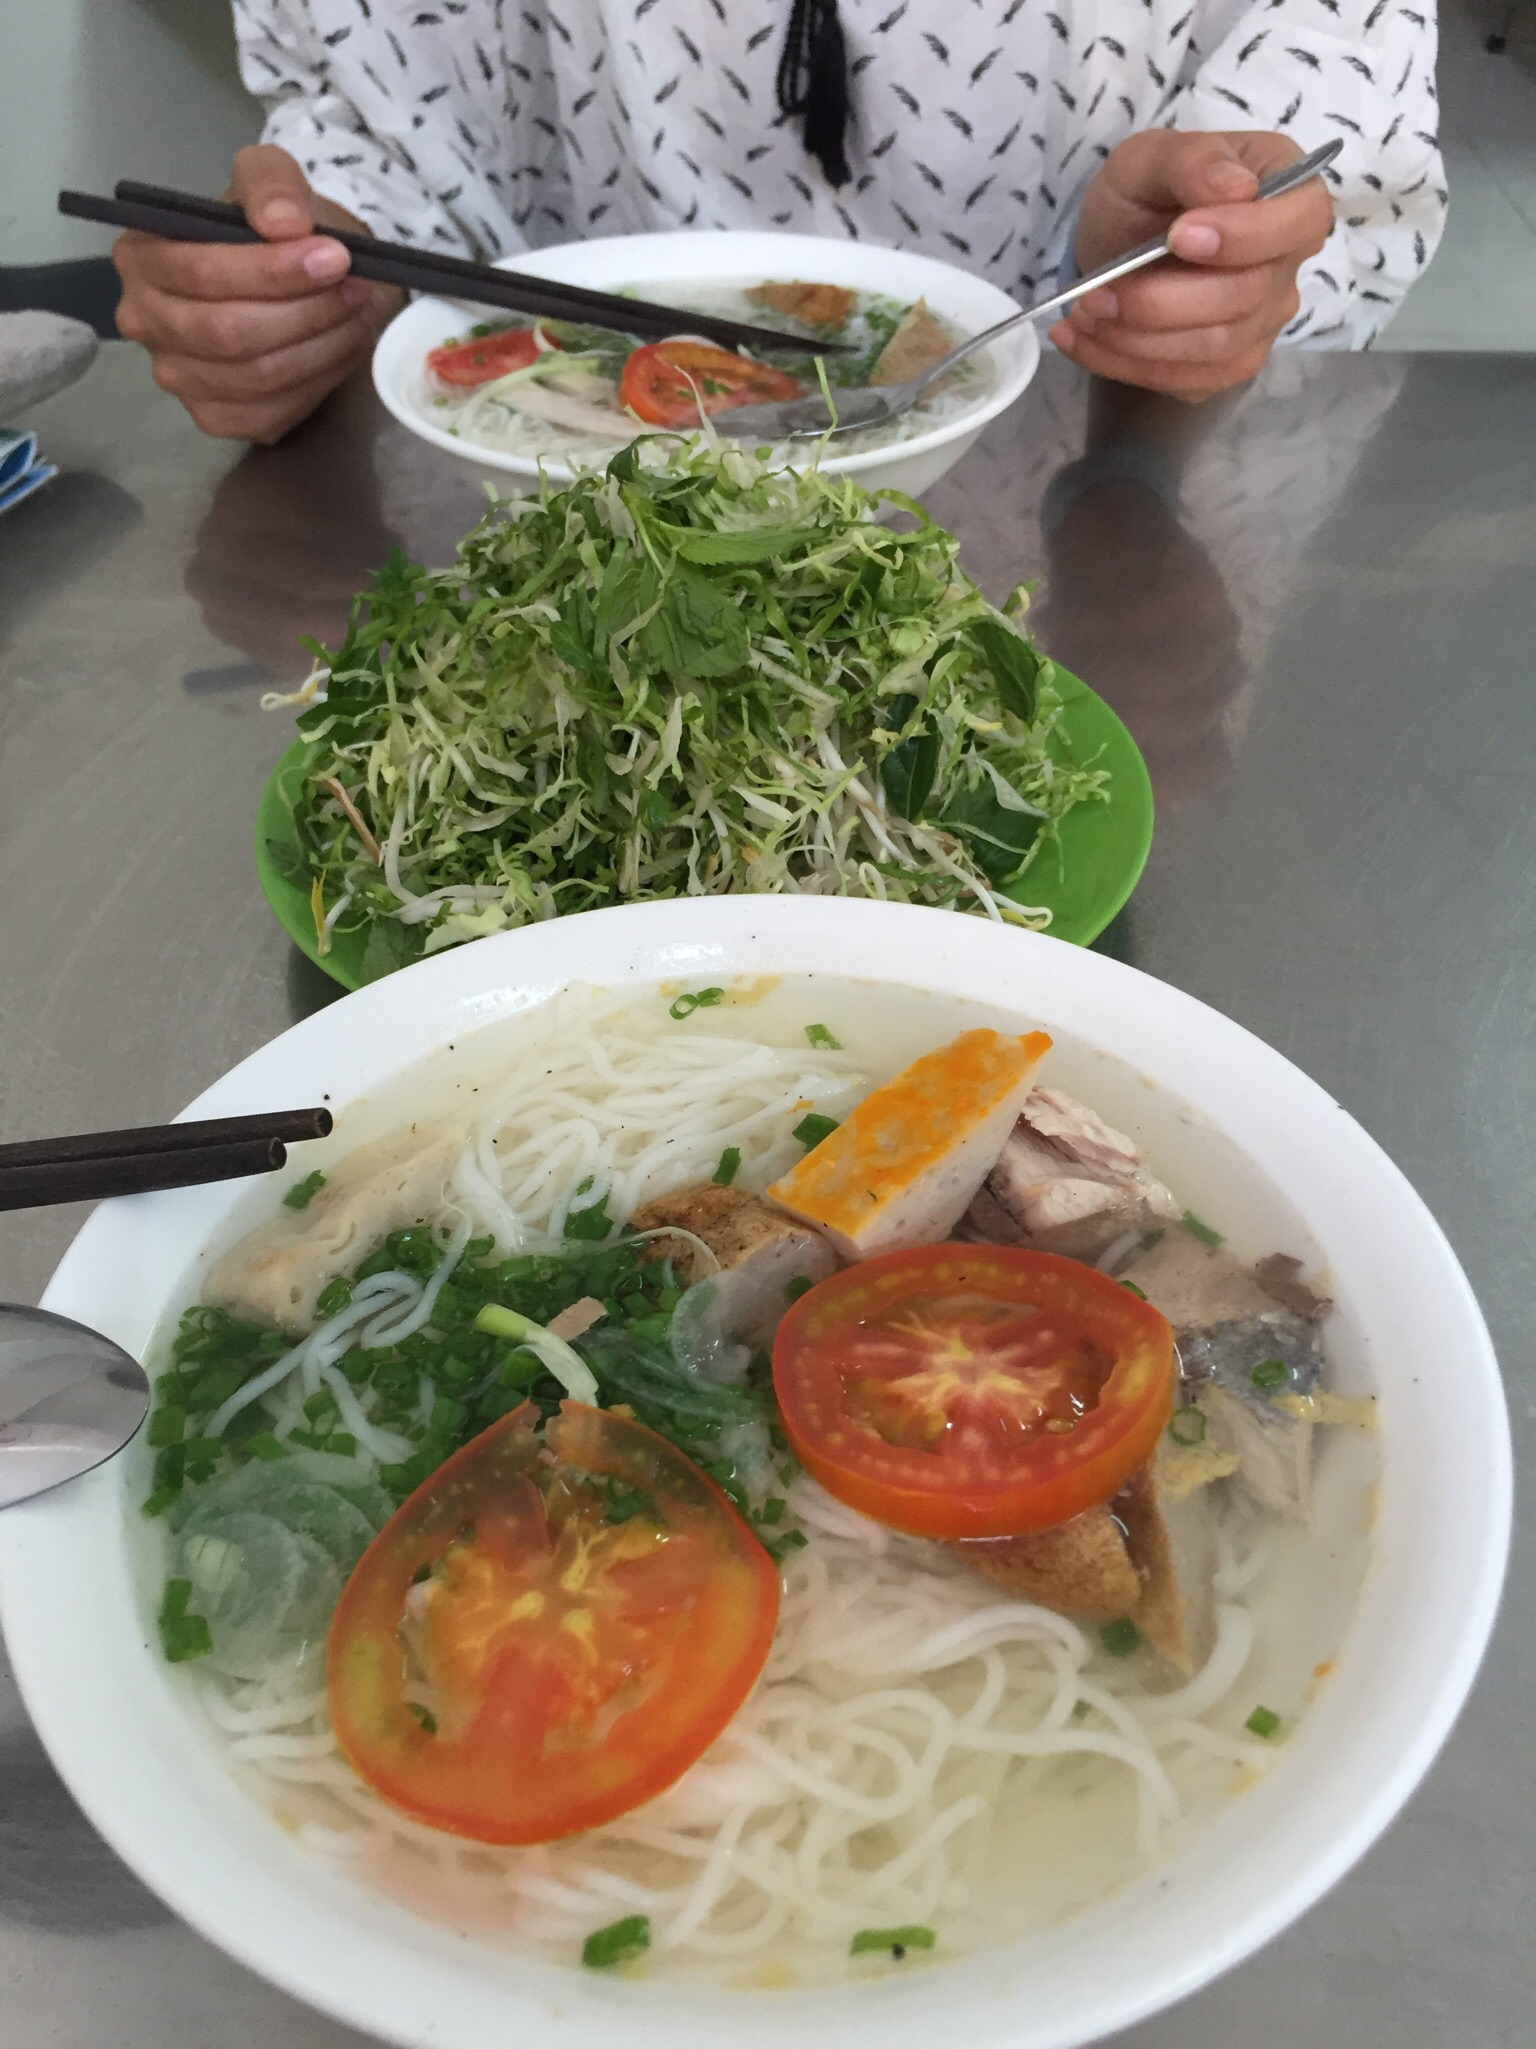 The best meal we had in Nha Trang was fish noodle soup for breakfast; I don't know if that's a good thing or a bad thing.